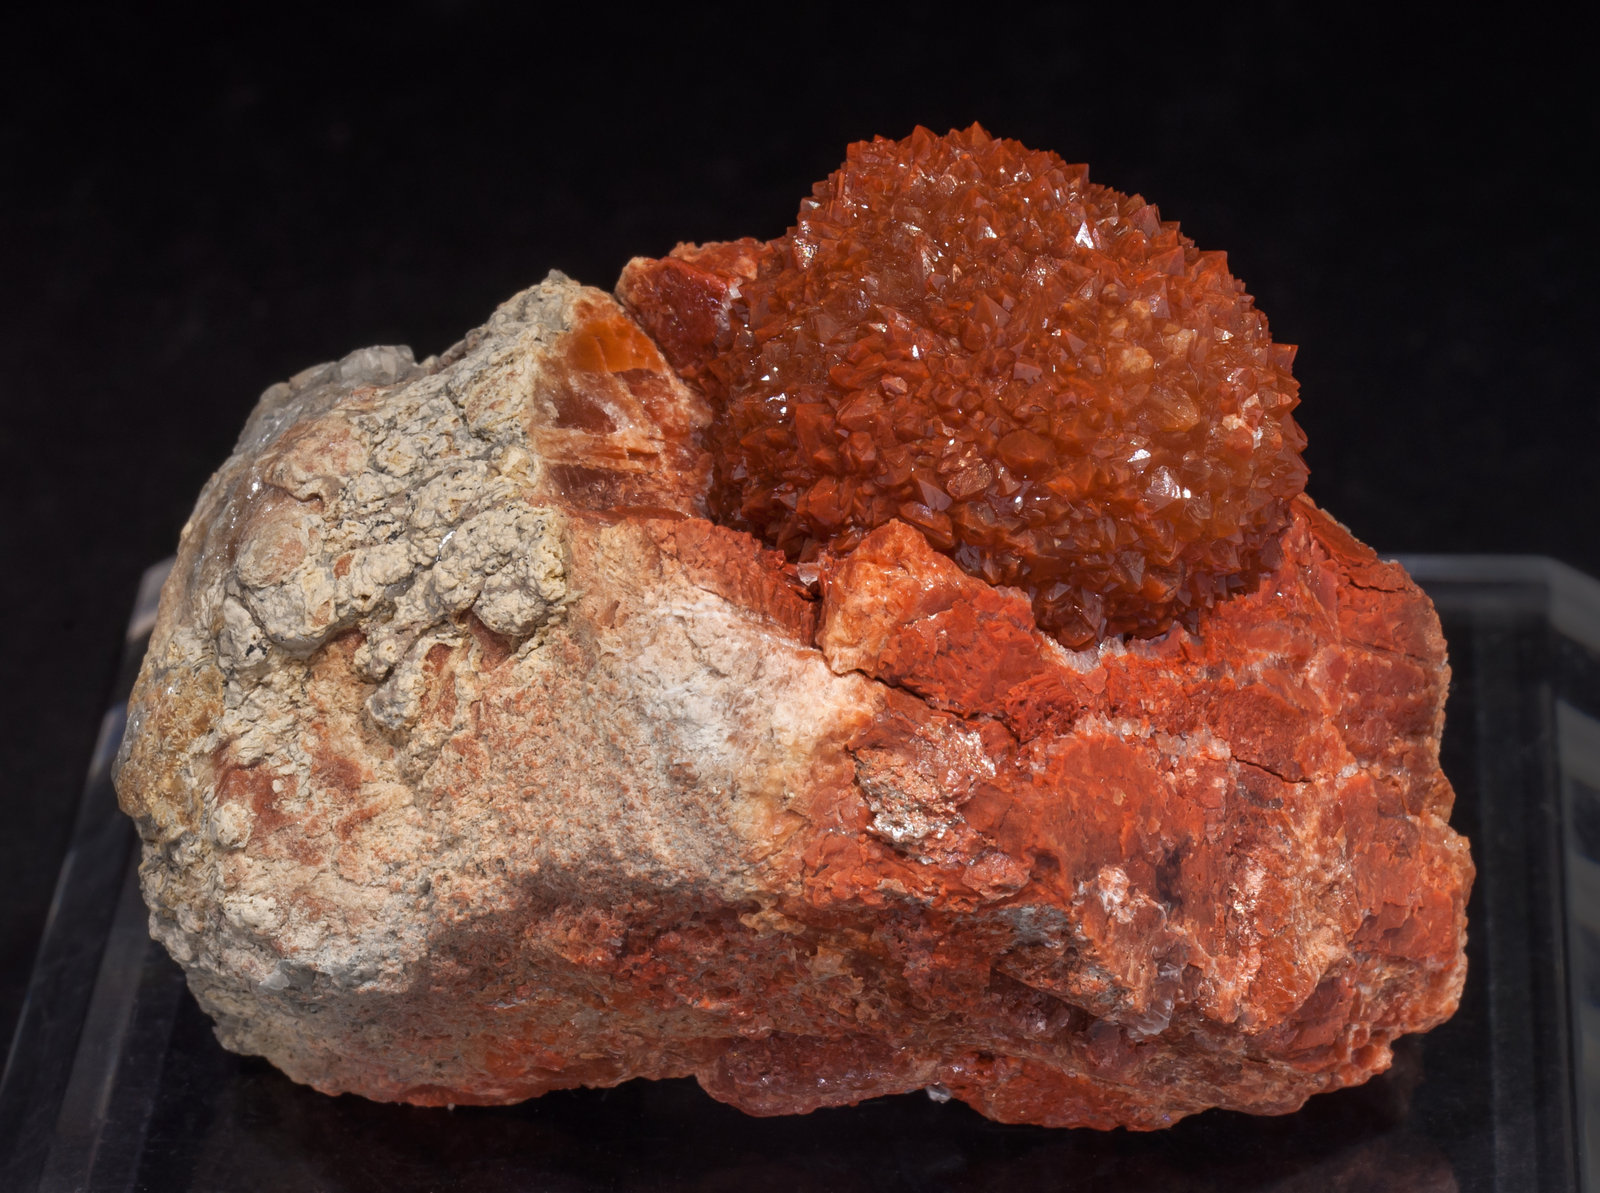 specimens/s_imagesAL5/Quartz_jacinto-ND14AL5f.jpg